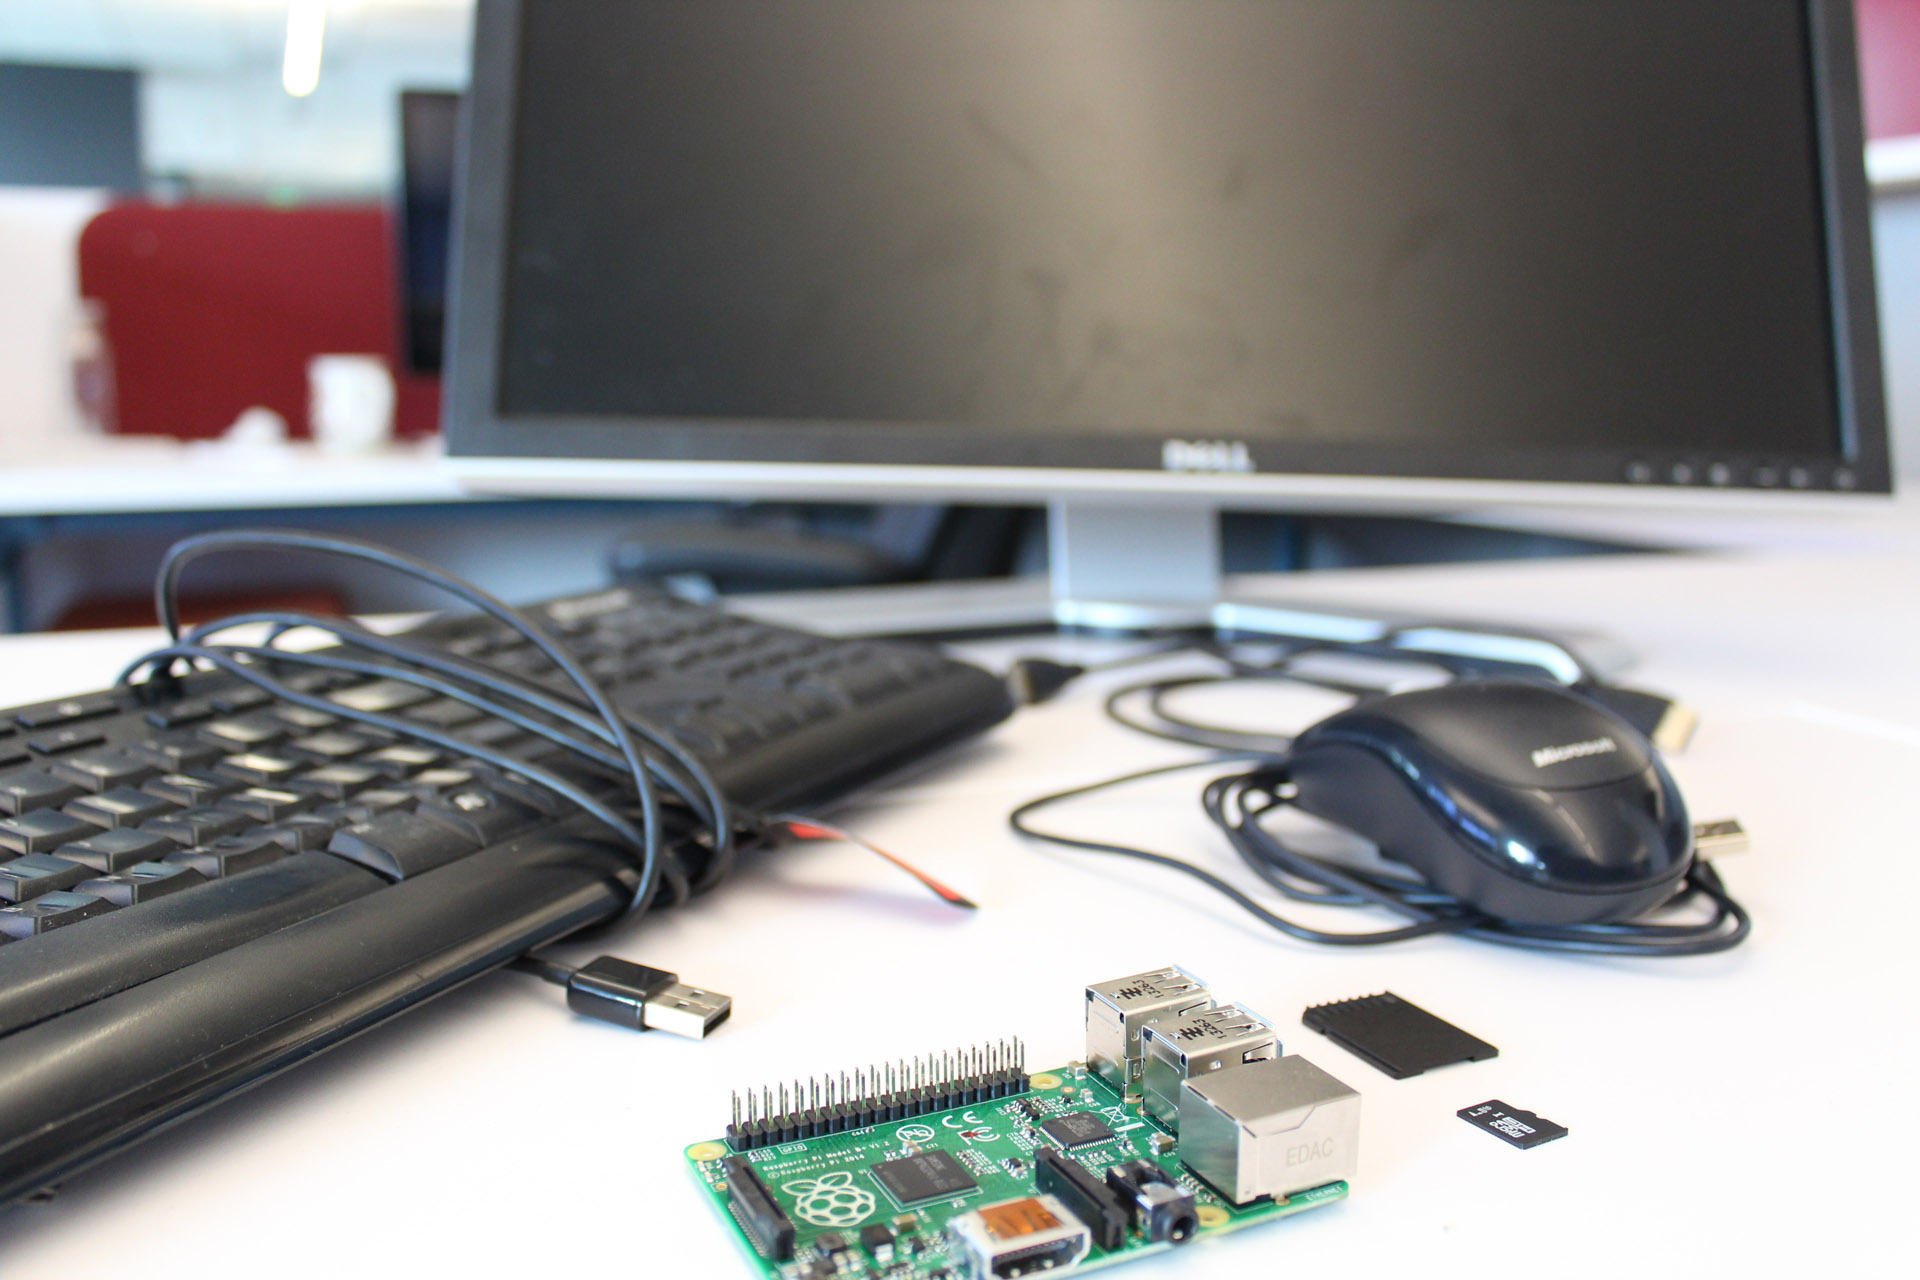 raspberry-pi-collected-parts-photo-100409824-orig